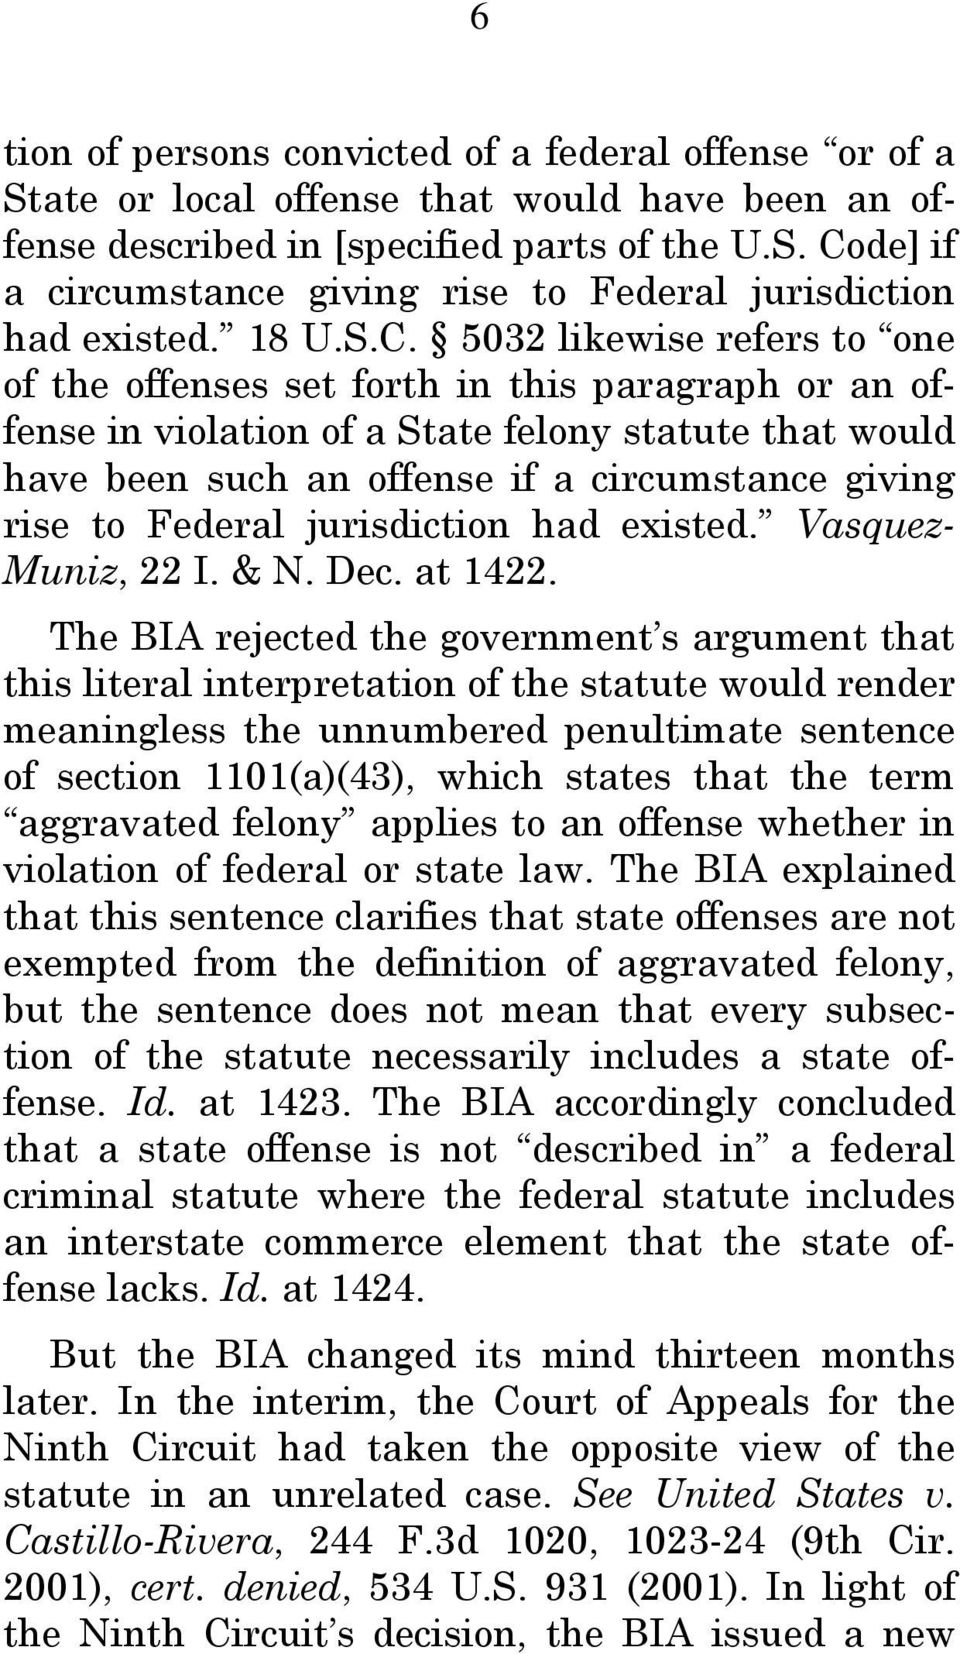 5032 likewise refers to one of the offenses set forth in this paragraph or an offense in violation of a State felony statute that would have been such an offense if a circumstance giving rise to